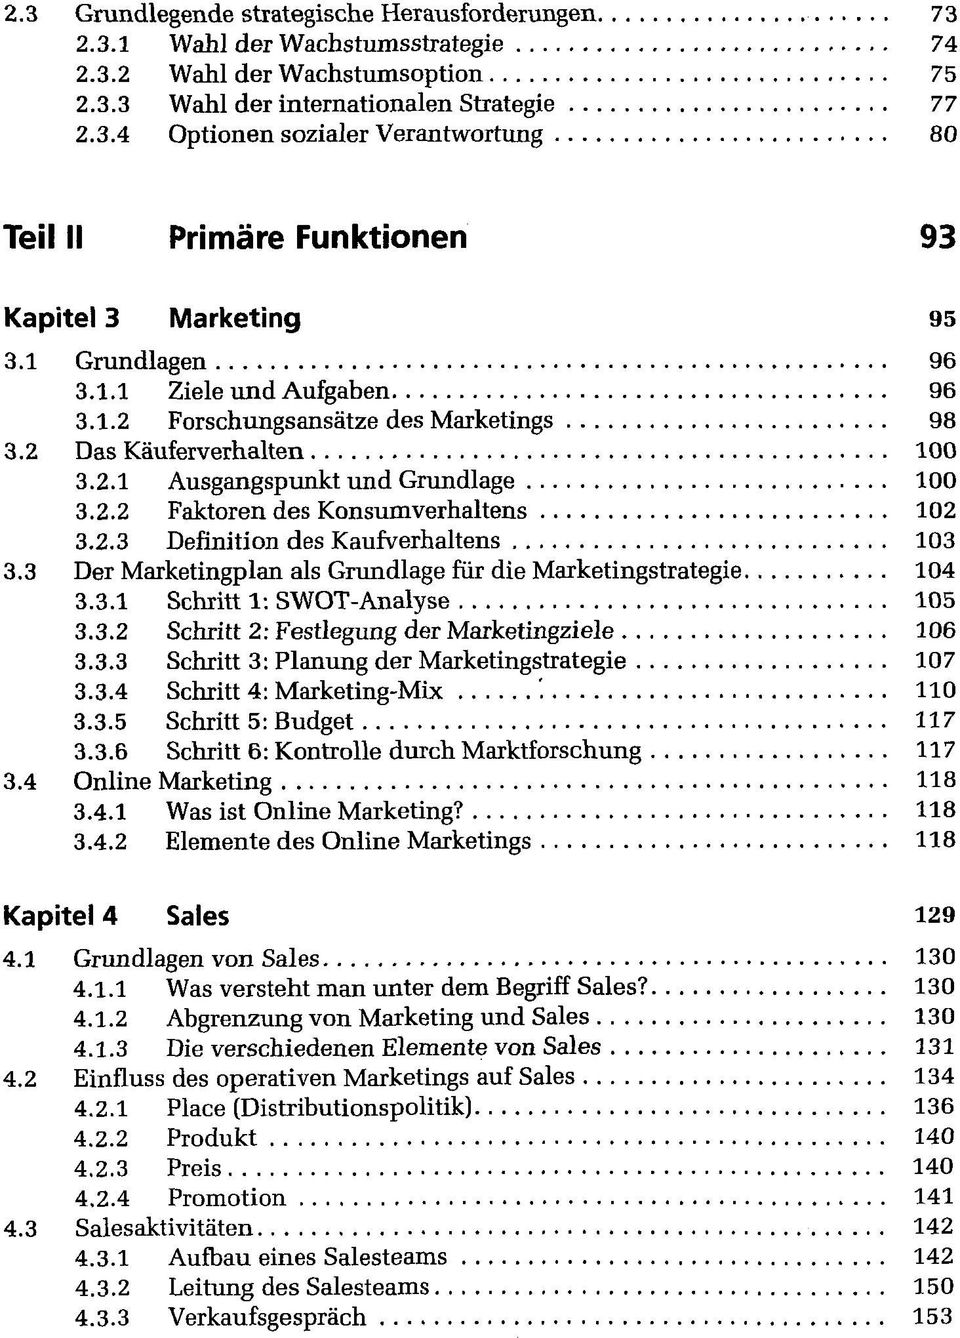 3 Der Marketingplan als Grundlage für die Marketingstrategie 104 3.3.1 Schritt 1: SWOT-Analyse 105 3.3.2 Schritt 2: Festlegung der Marketingziele 106 3.3.3 Schritt 3: Planung der Marketingstrategie 107 3.